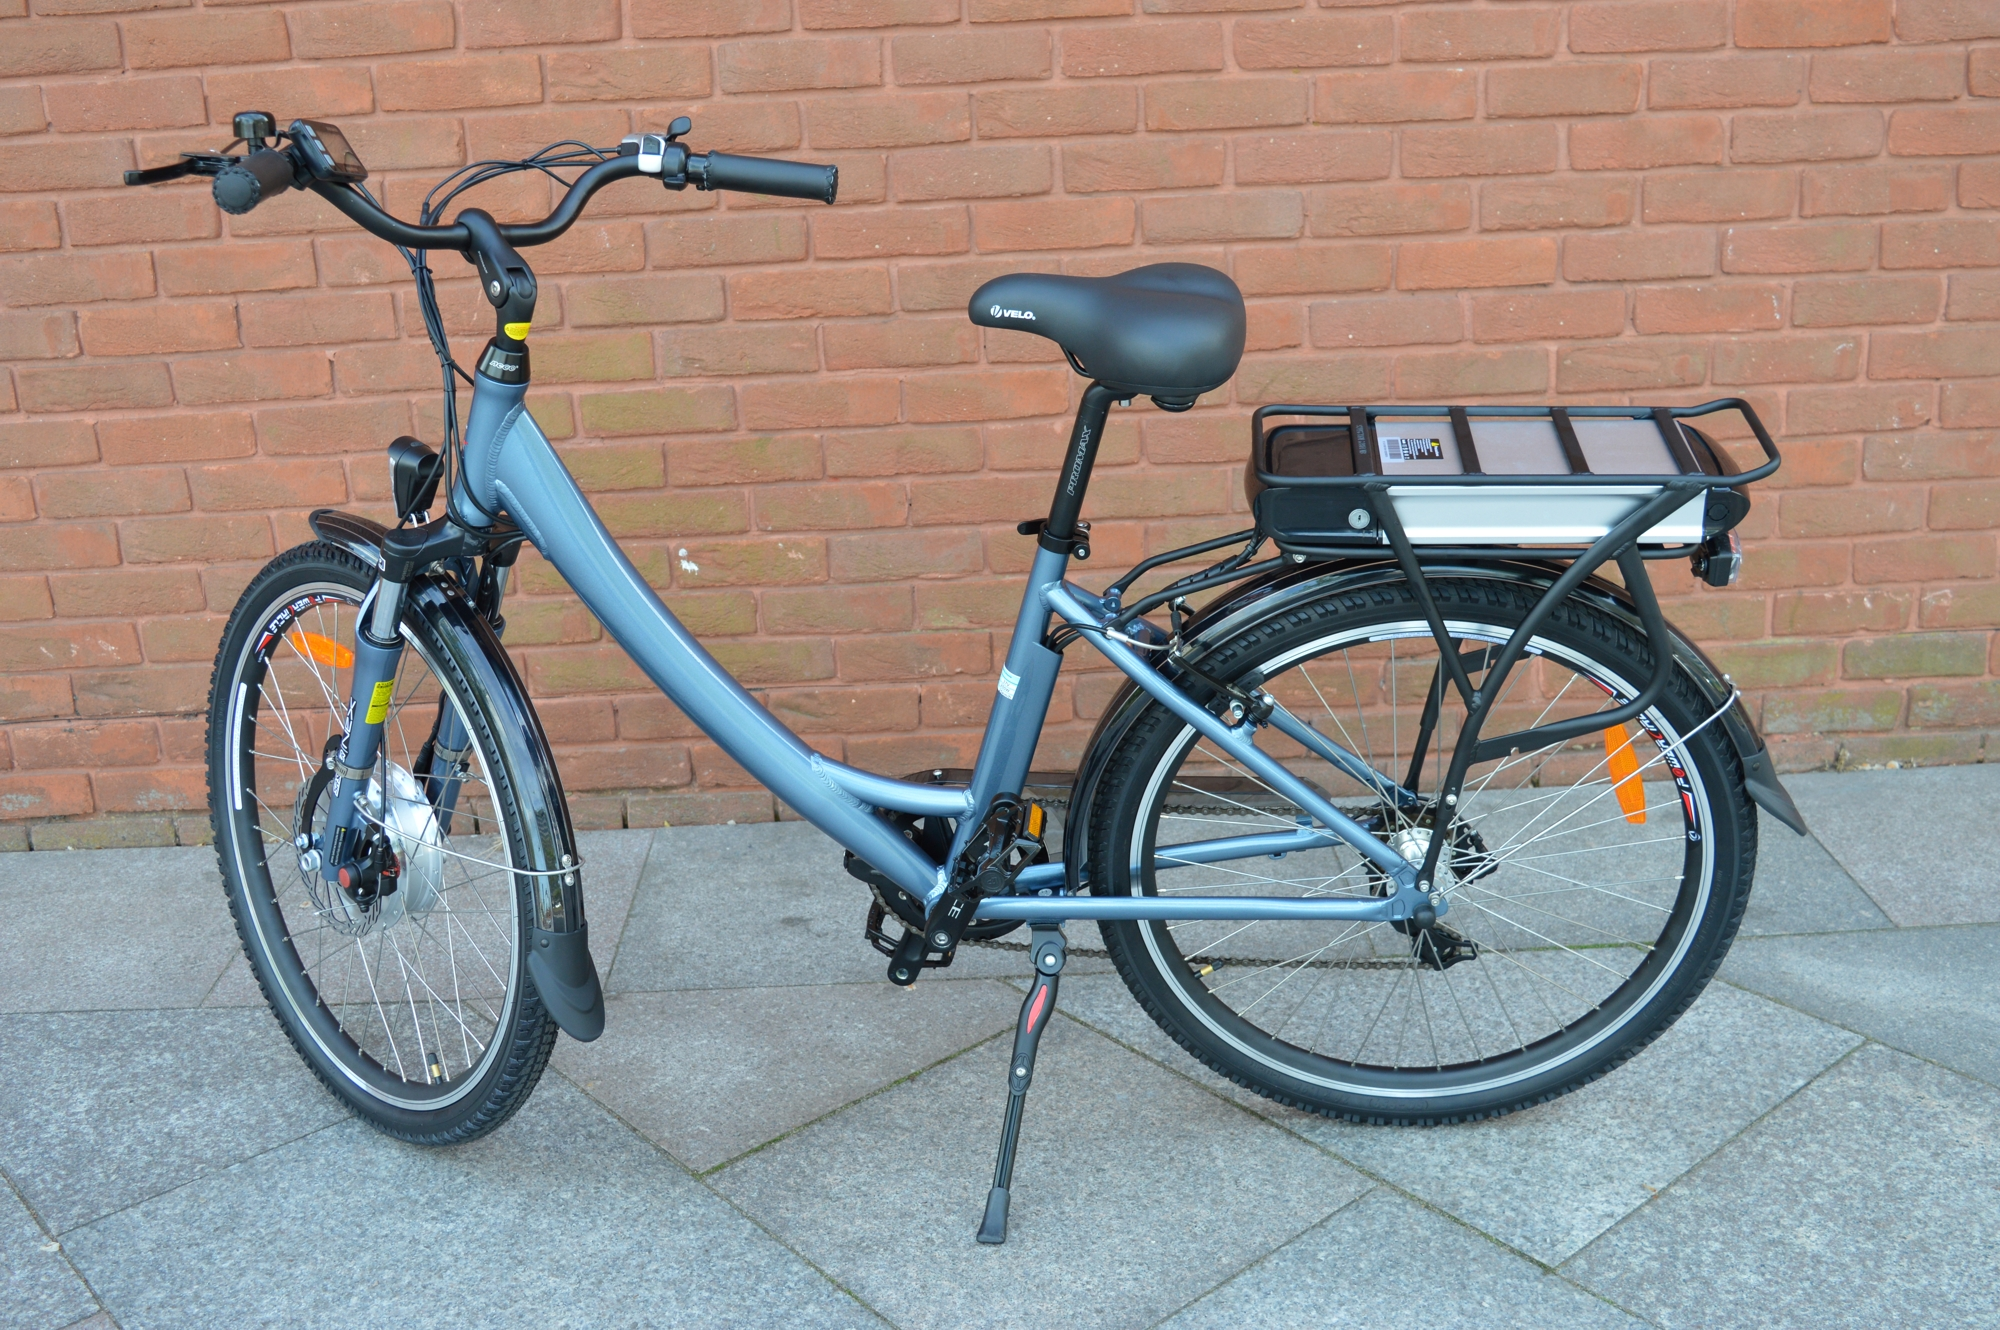 Woosh Electric Bikes - Quality electric bikes inspired by you.